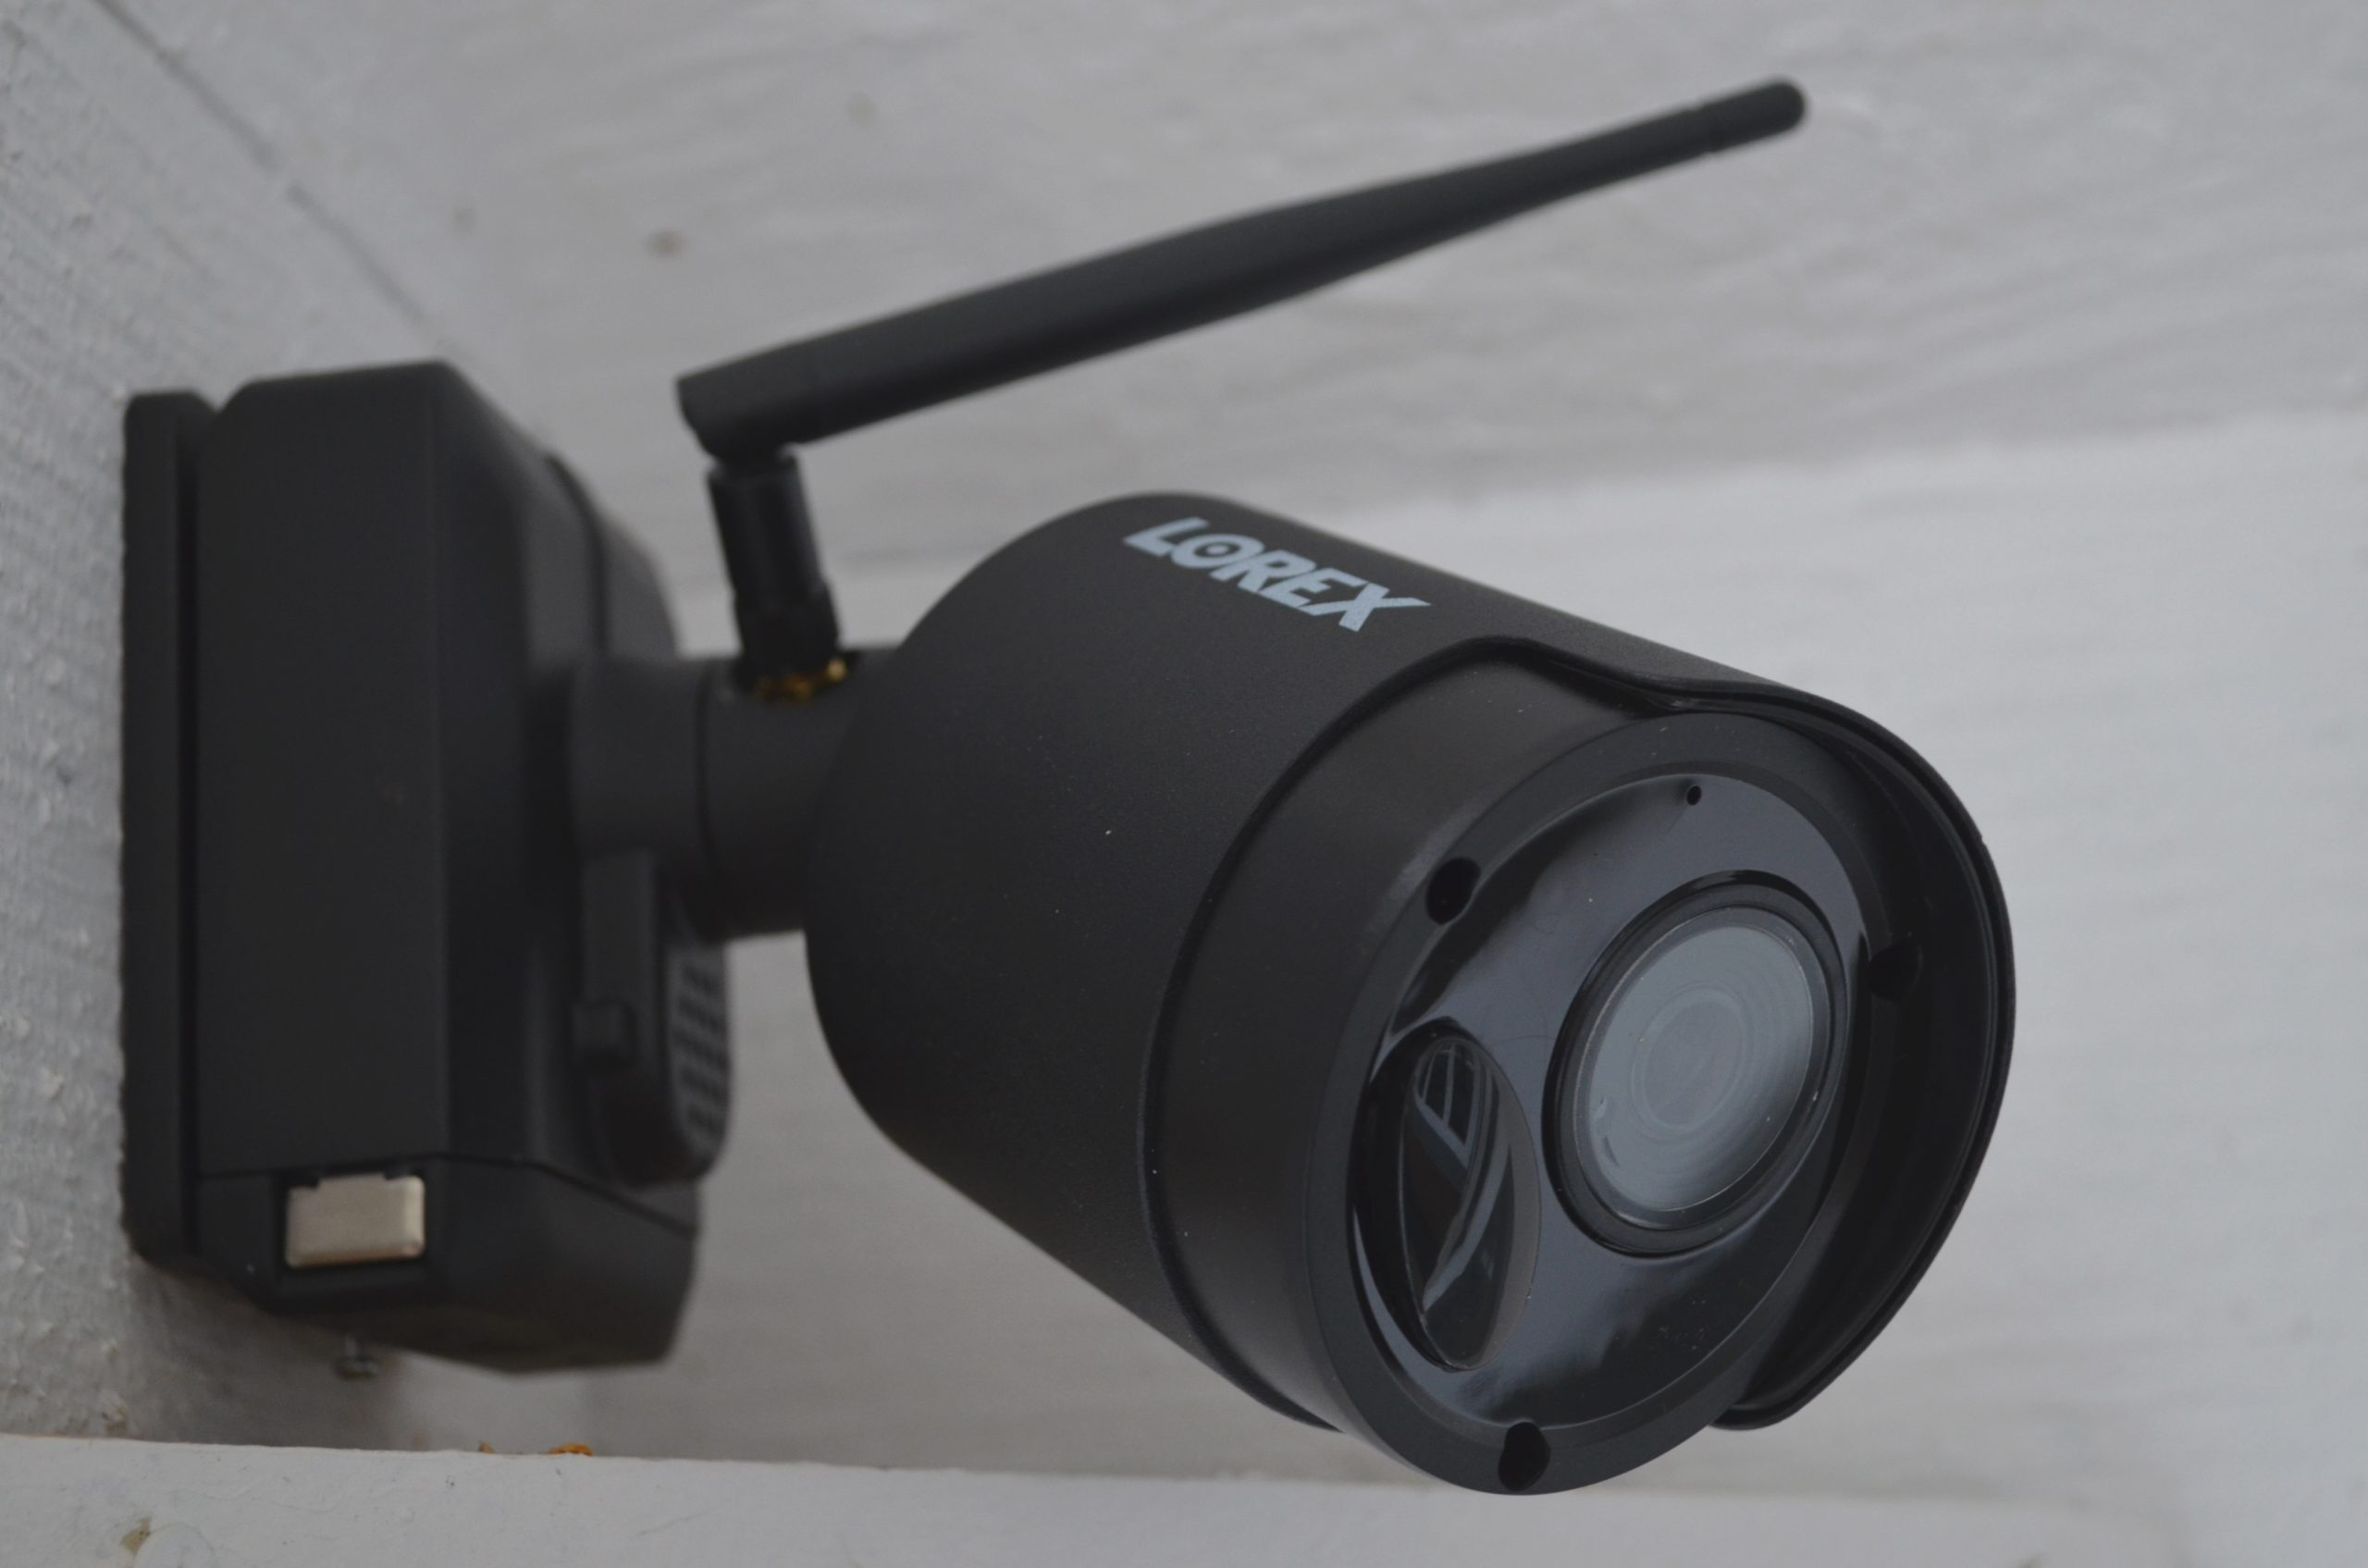 lorex home security camera installed